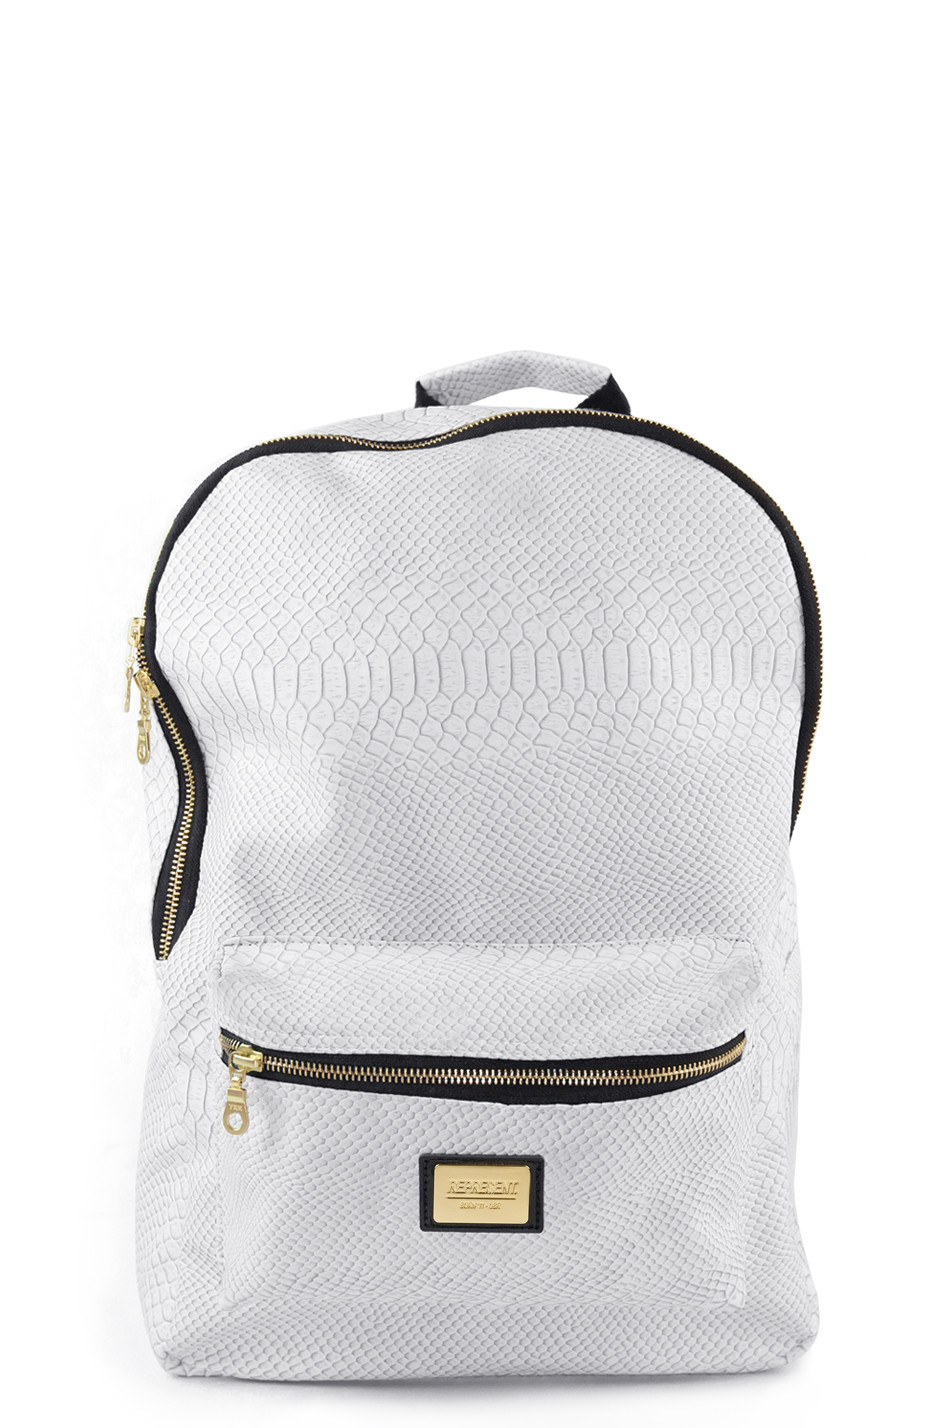 Off White Python Backpack Represent Clo